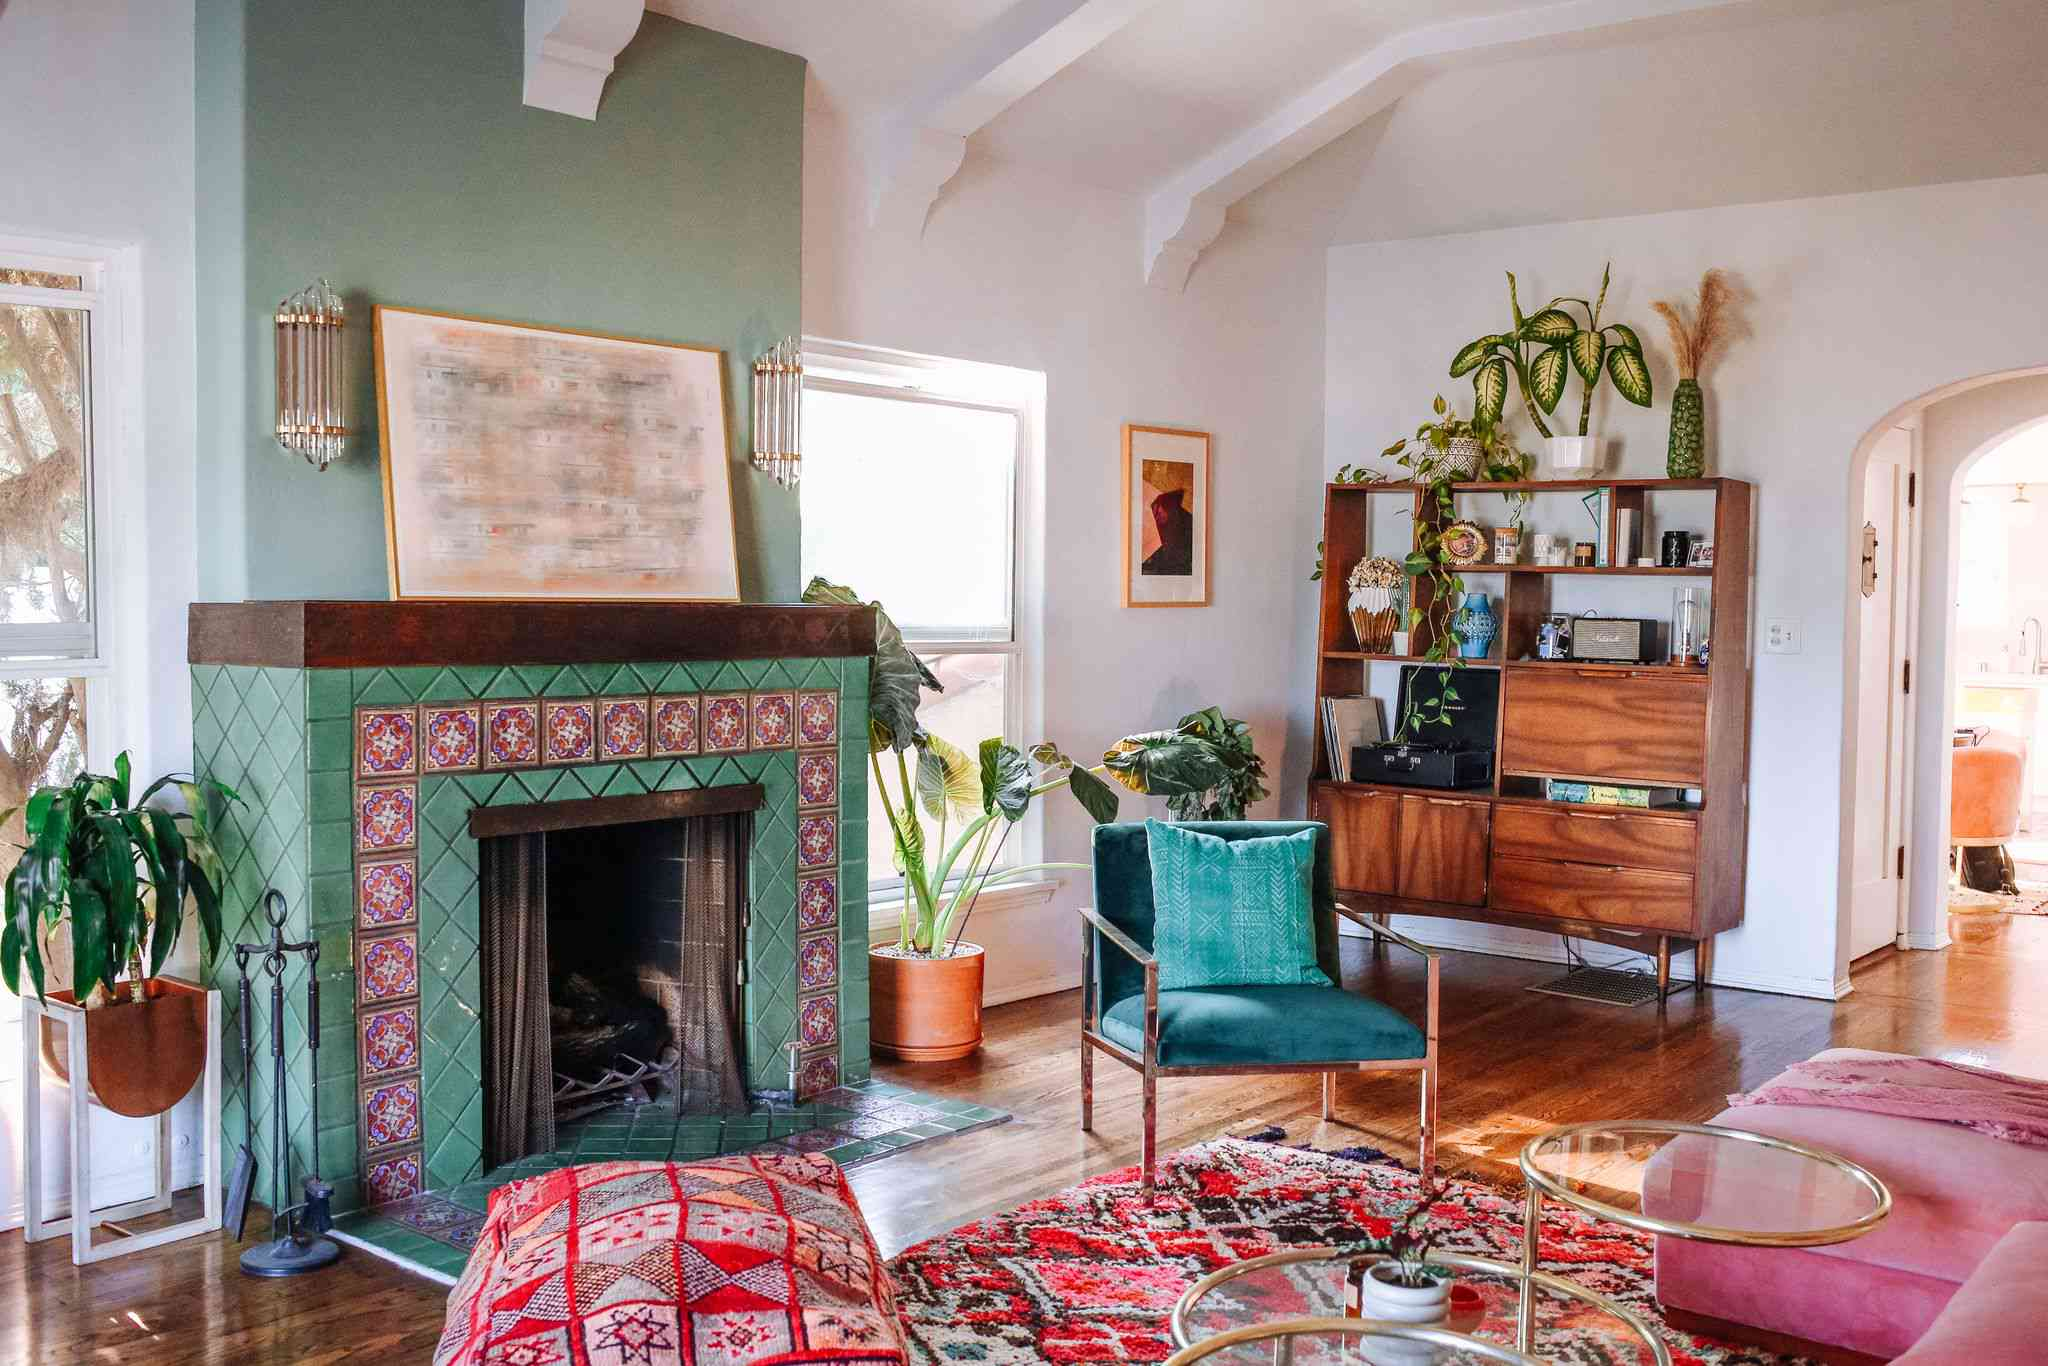 Fireplace with a green blue paint